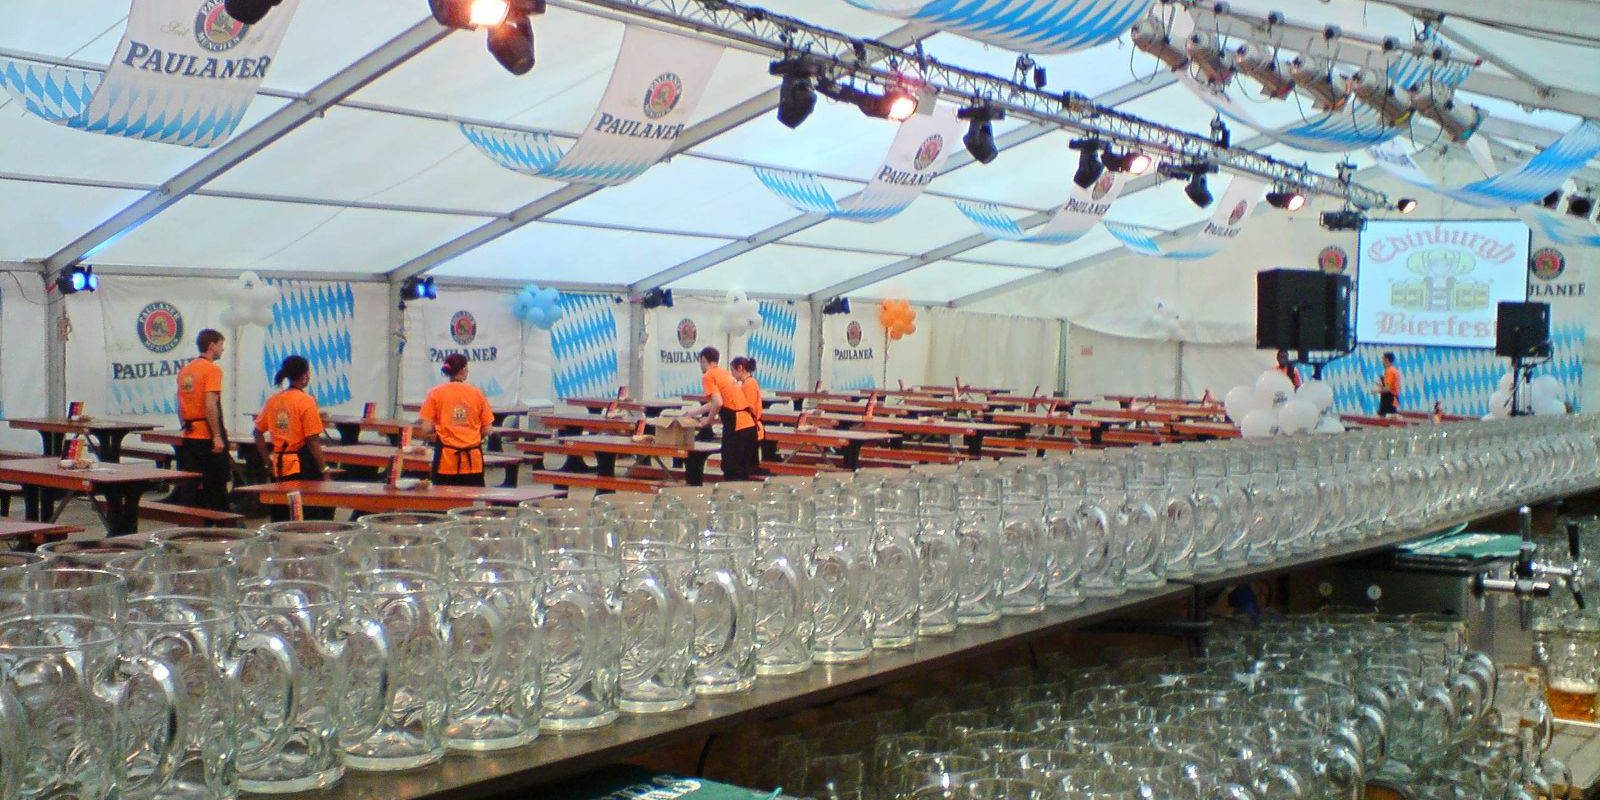 Sporting Hire - Beer Festival in 20m wide structure